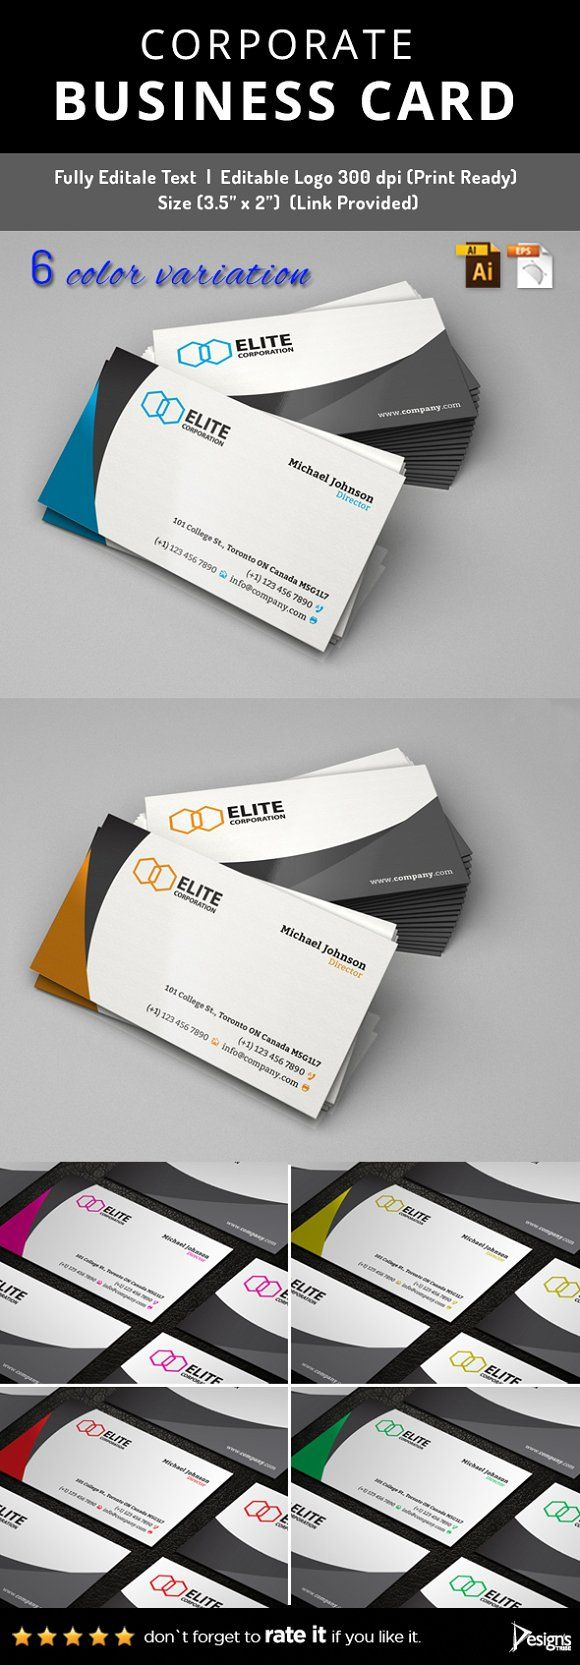 13 Best Medical Business Card Images On Pinterest Clean Design